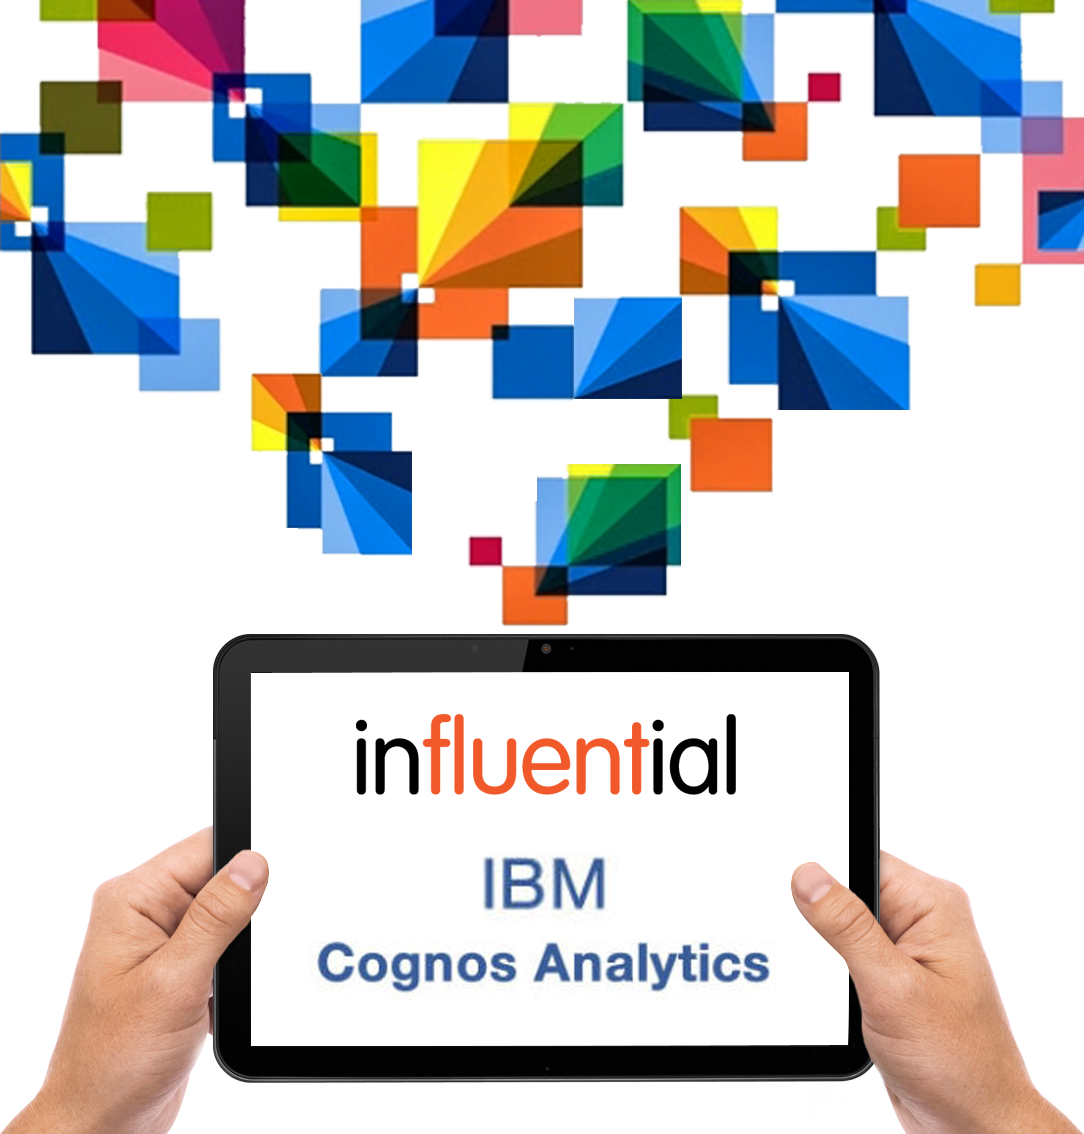 influential-tablet-ibm-cognos-analytics